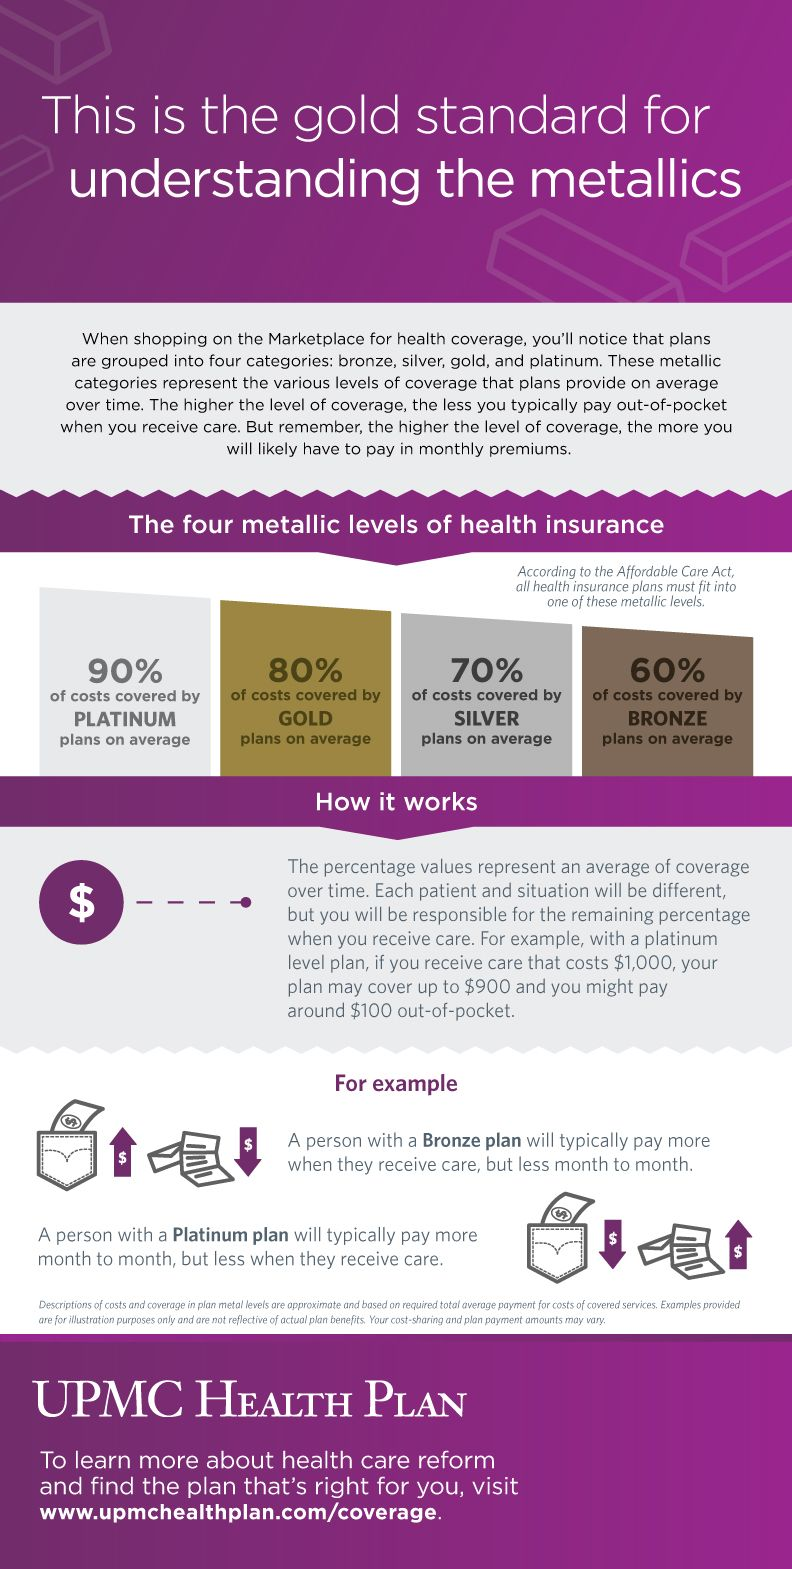 Understanding The Aca Metallic Levels  Upmc Health Plan